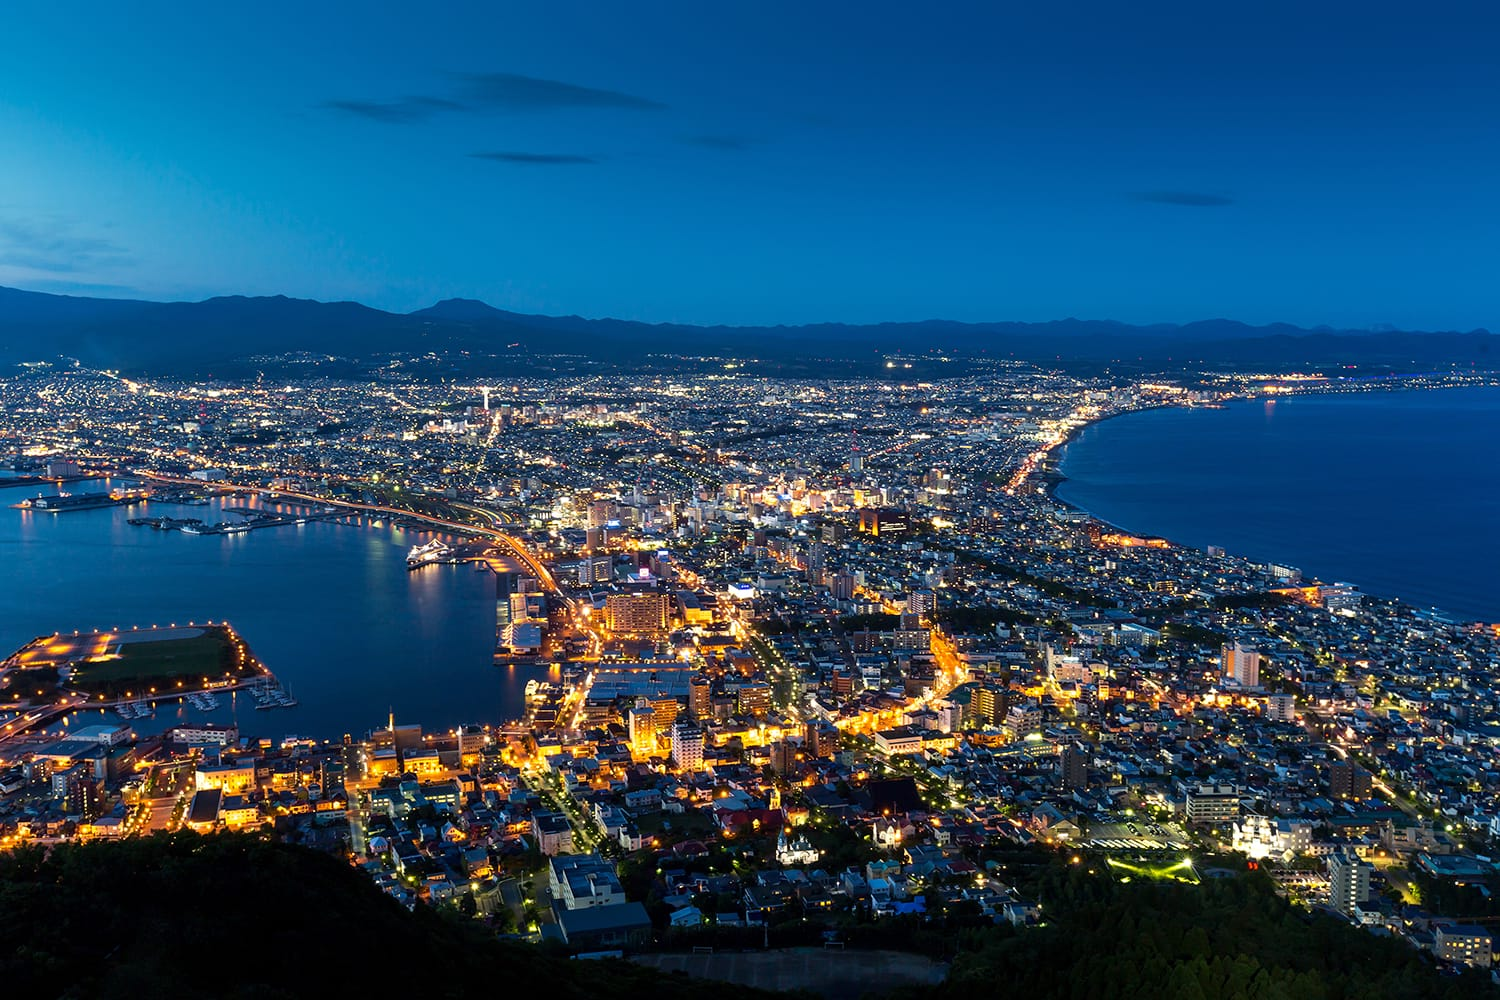 Hakodate City view from Mountain Hakodate, winter season, Hokkaido, Japan